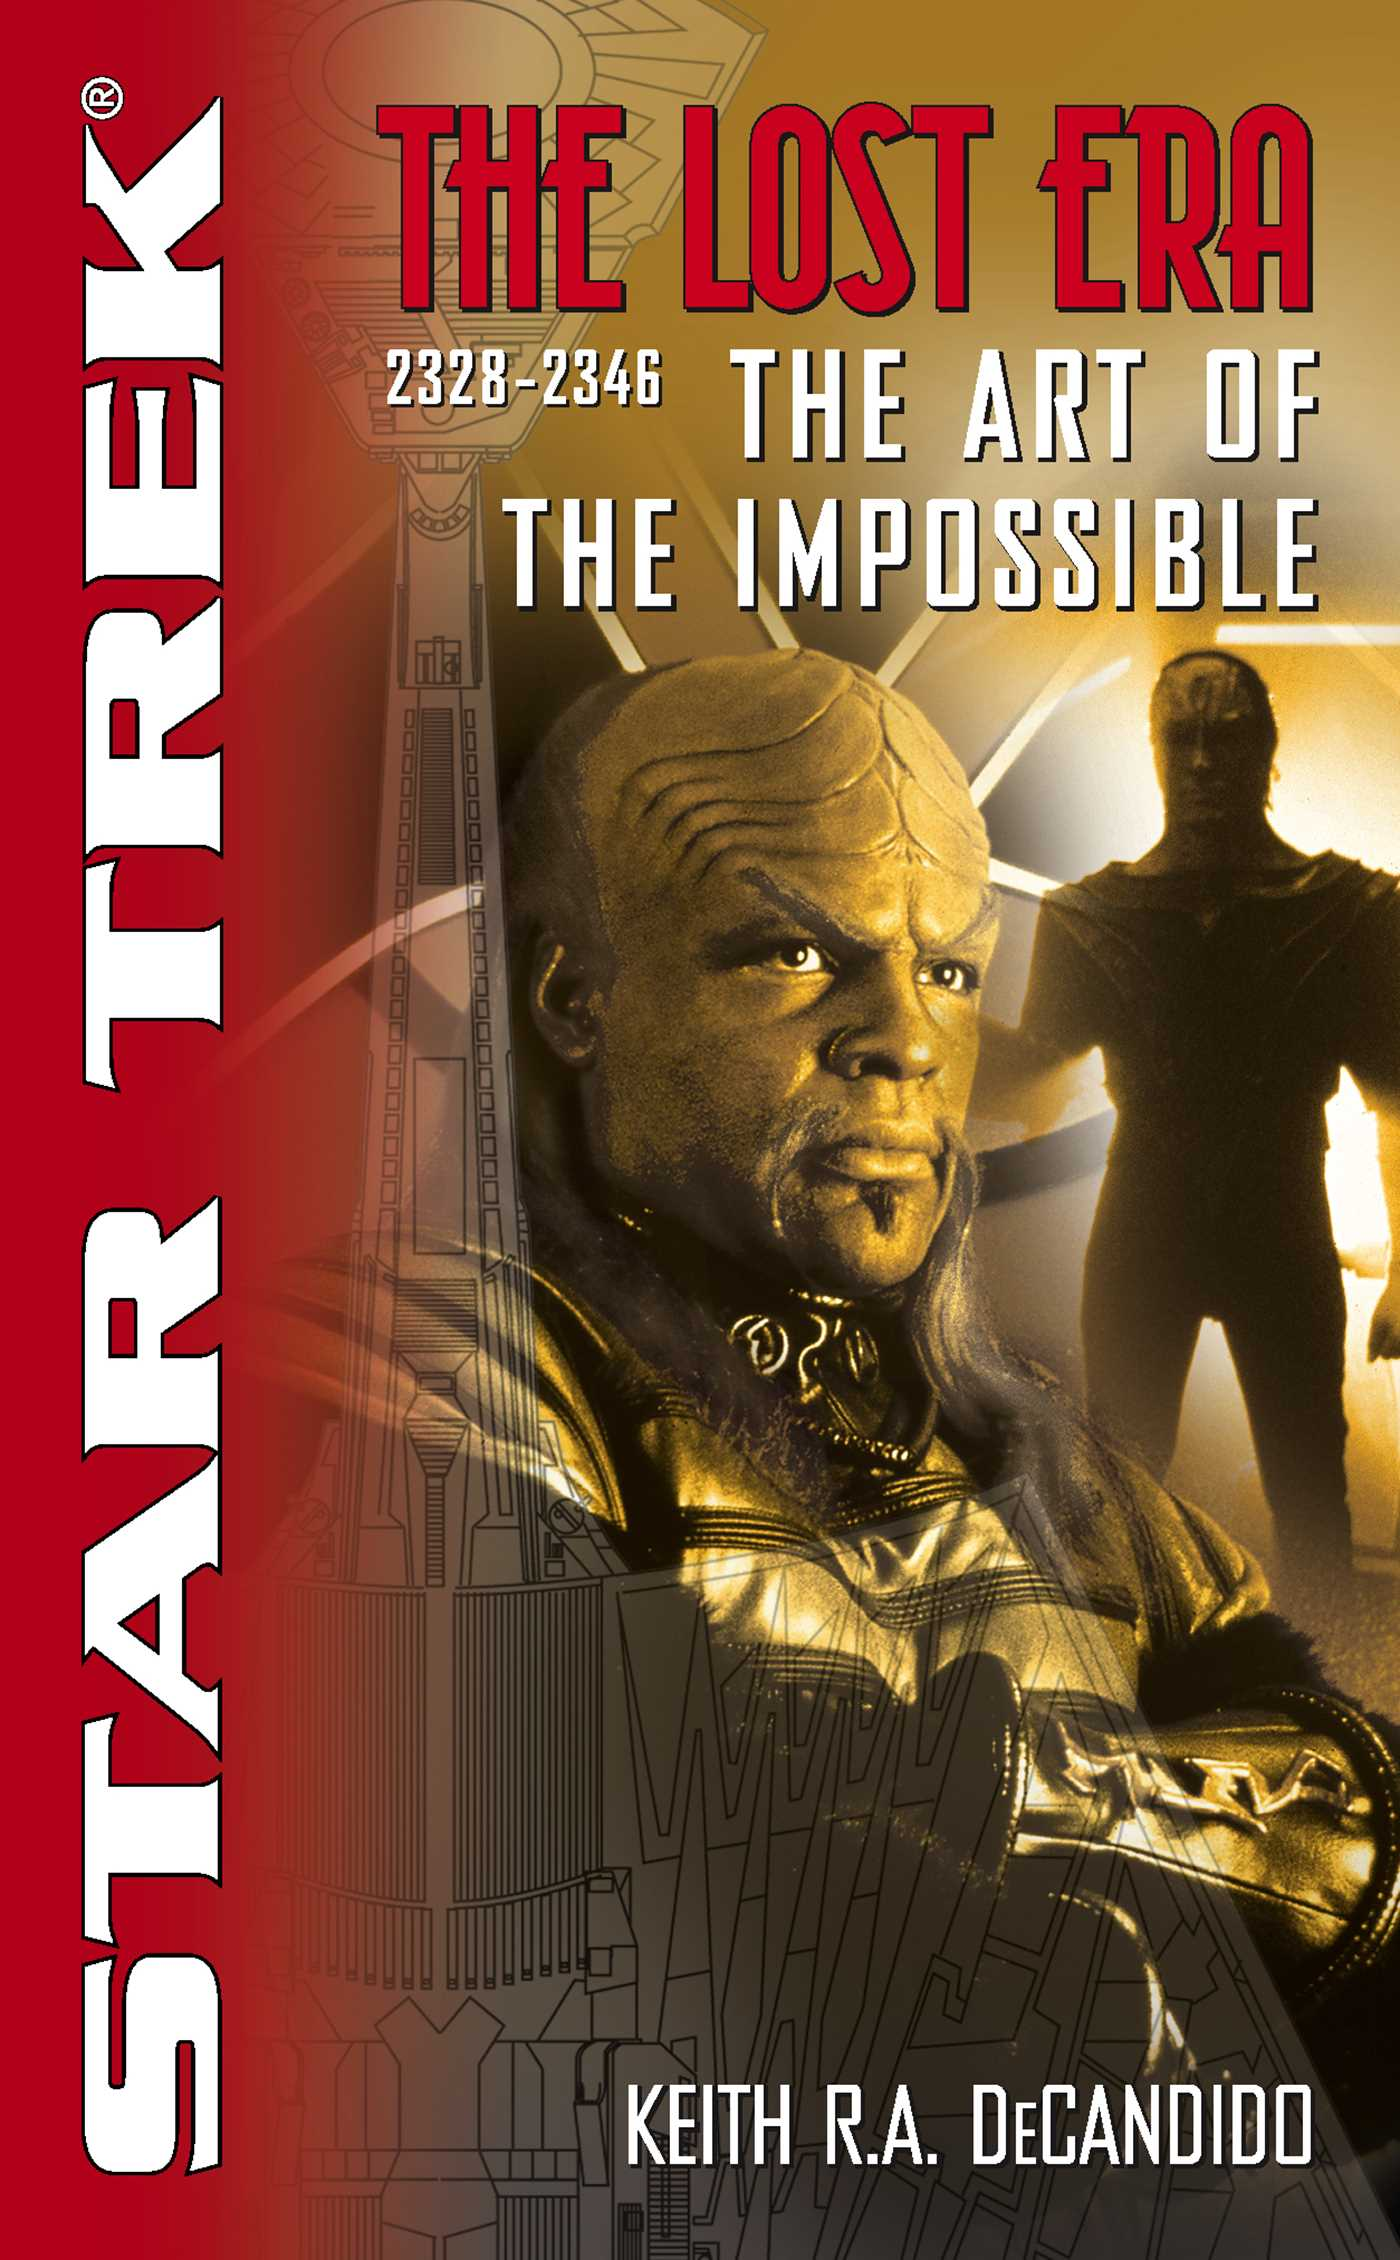 Book Cover Image (jpg): The Star Trek: The Lost era: 2328-2346: The Art of  the Impossible